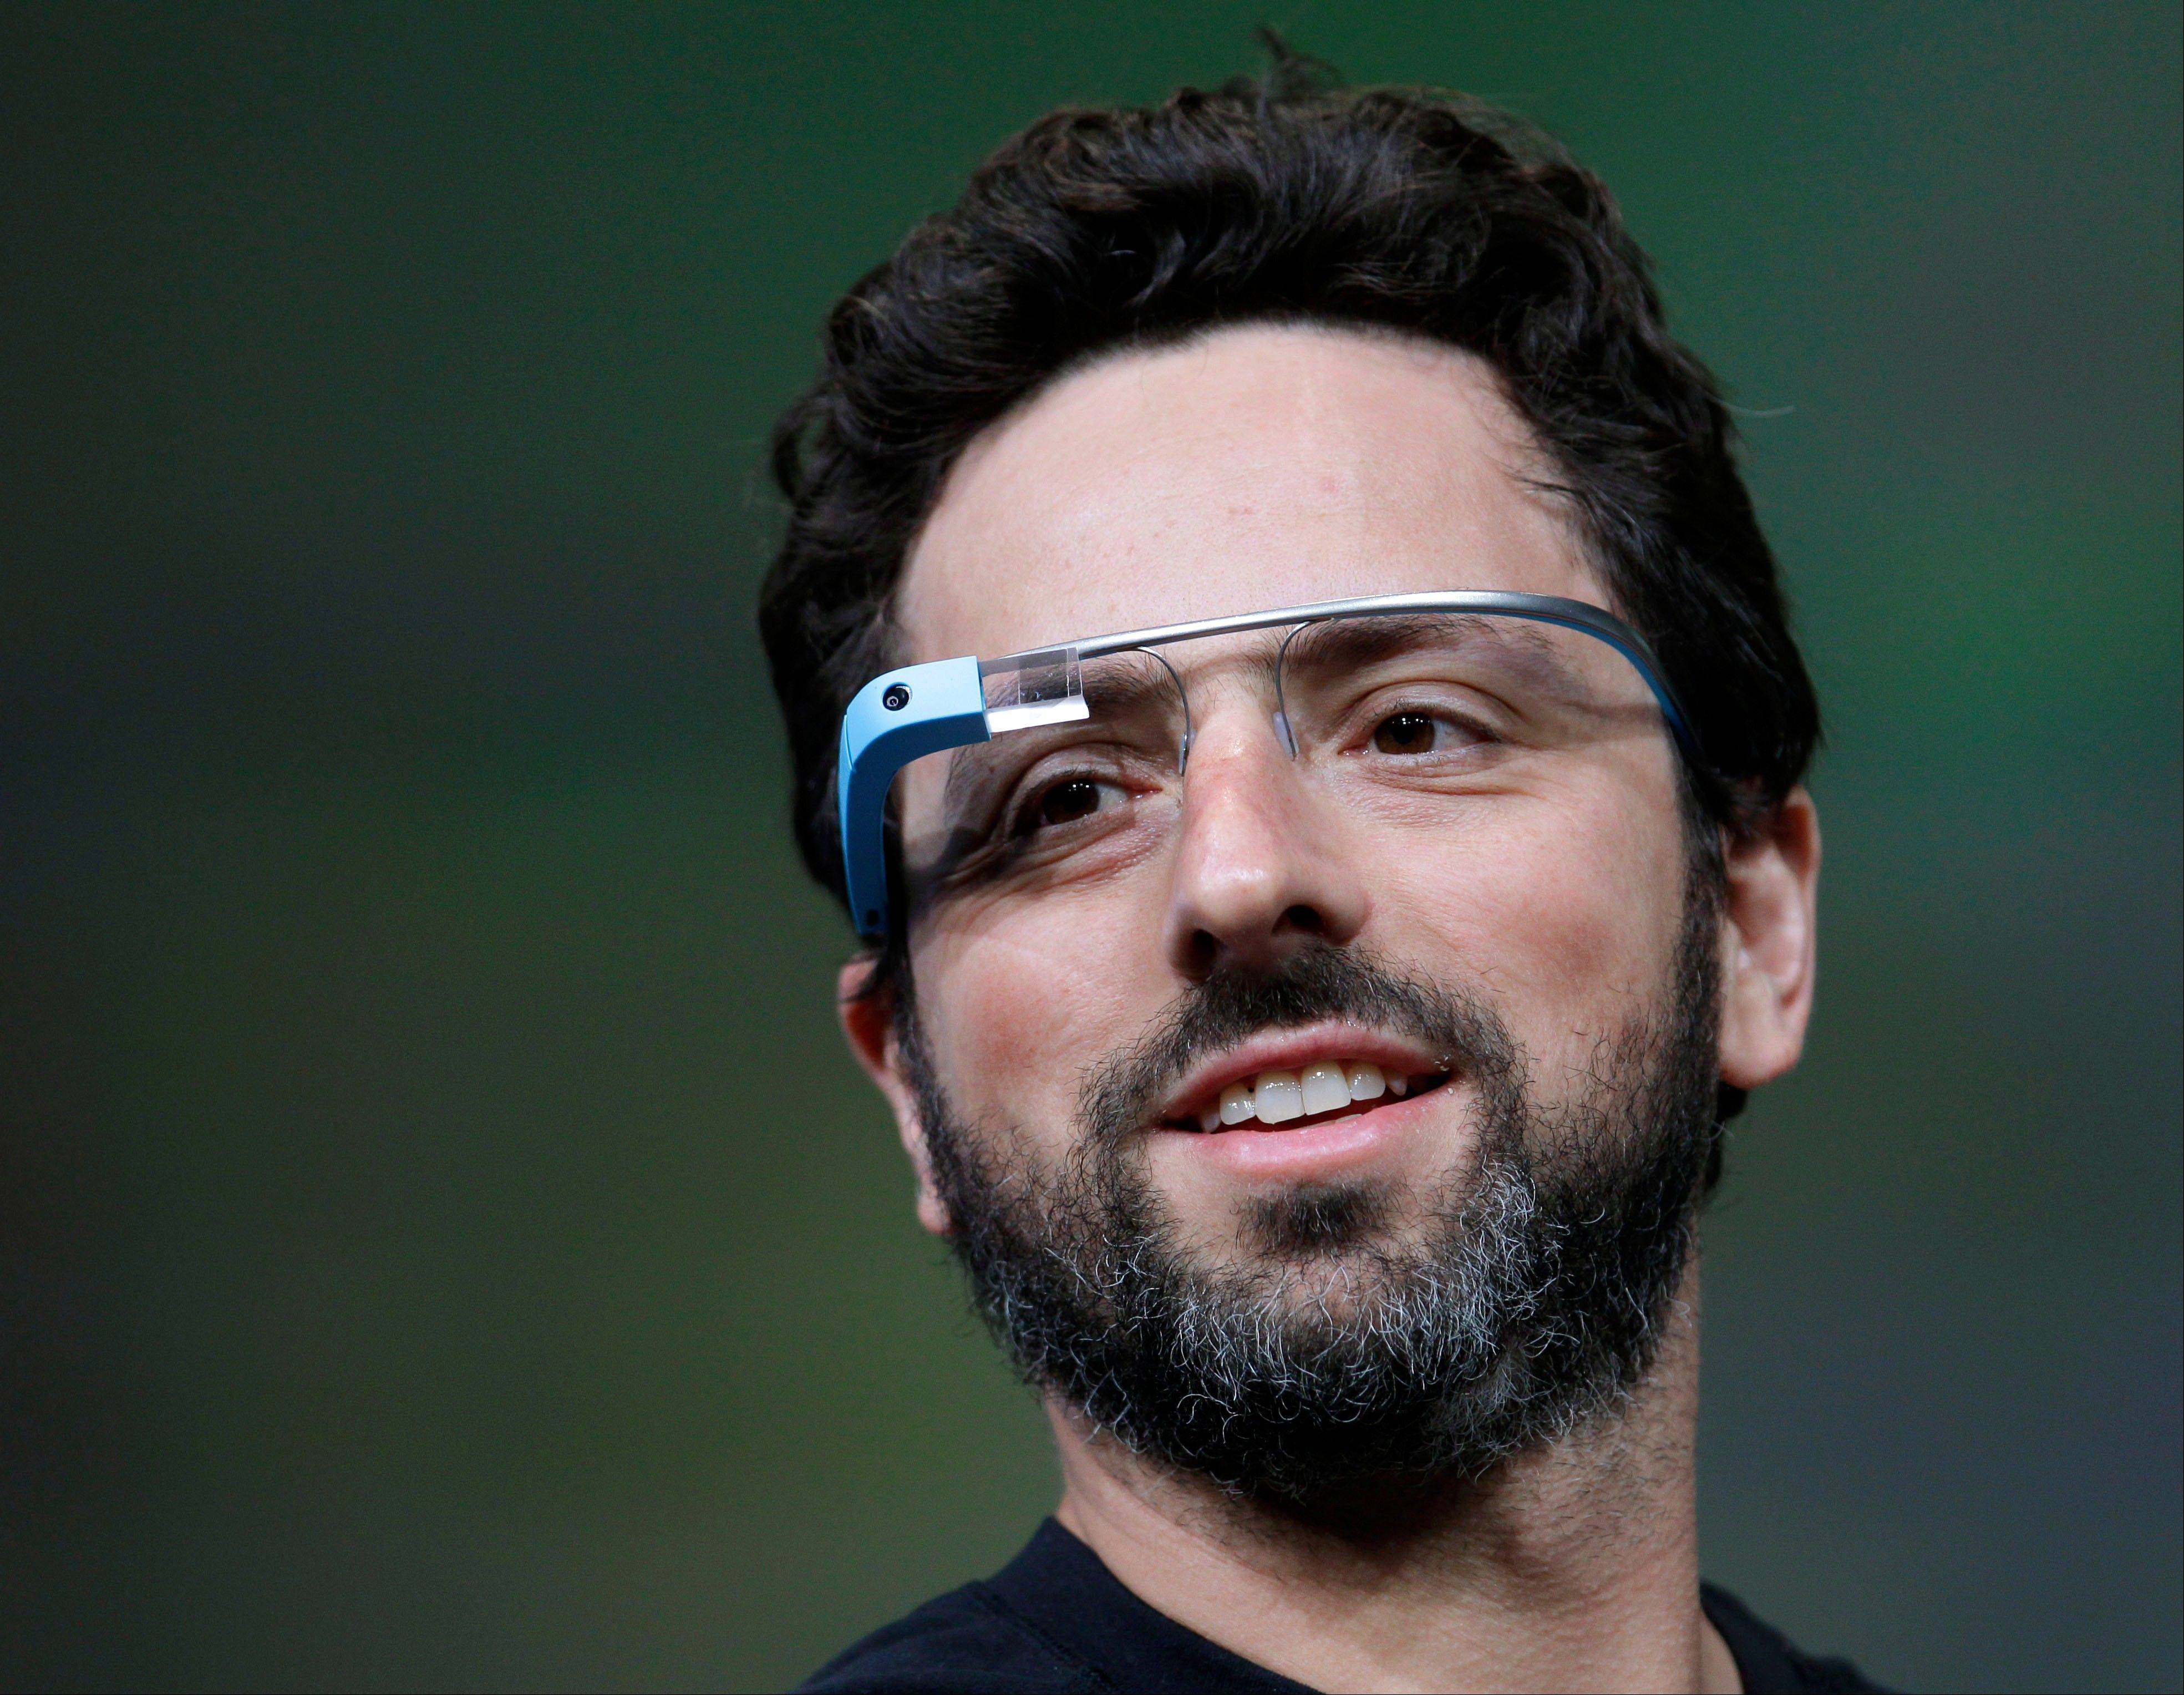 Illinois could bar drivers from using Google Glass